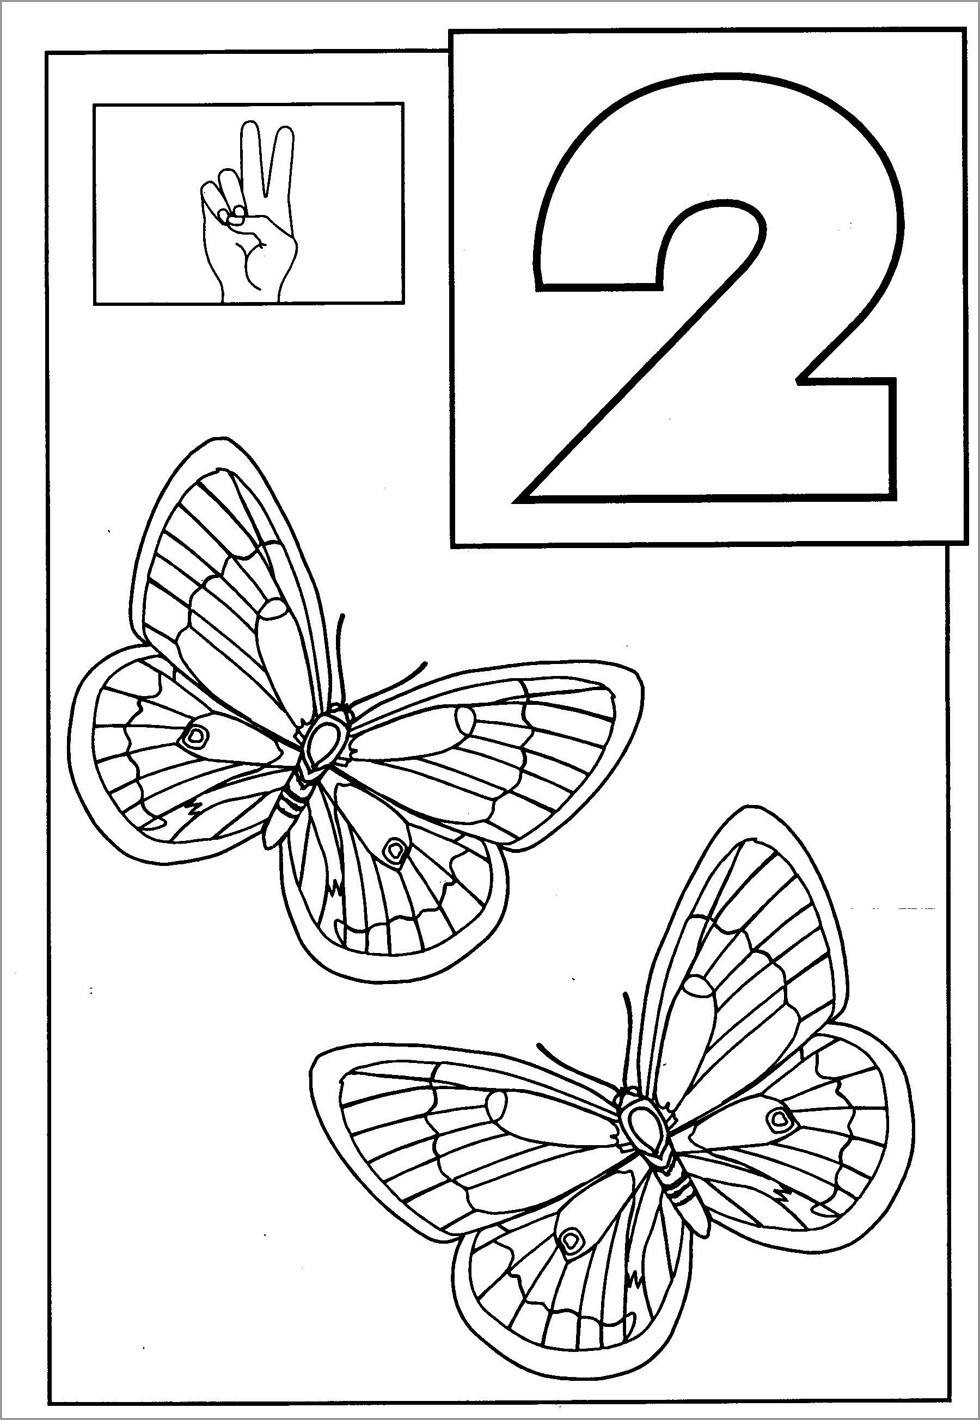 butterflies coloring coloringbay number cursive text butterfly minnie mouse crayola dry coloring pages Number 2 Coloring Page